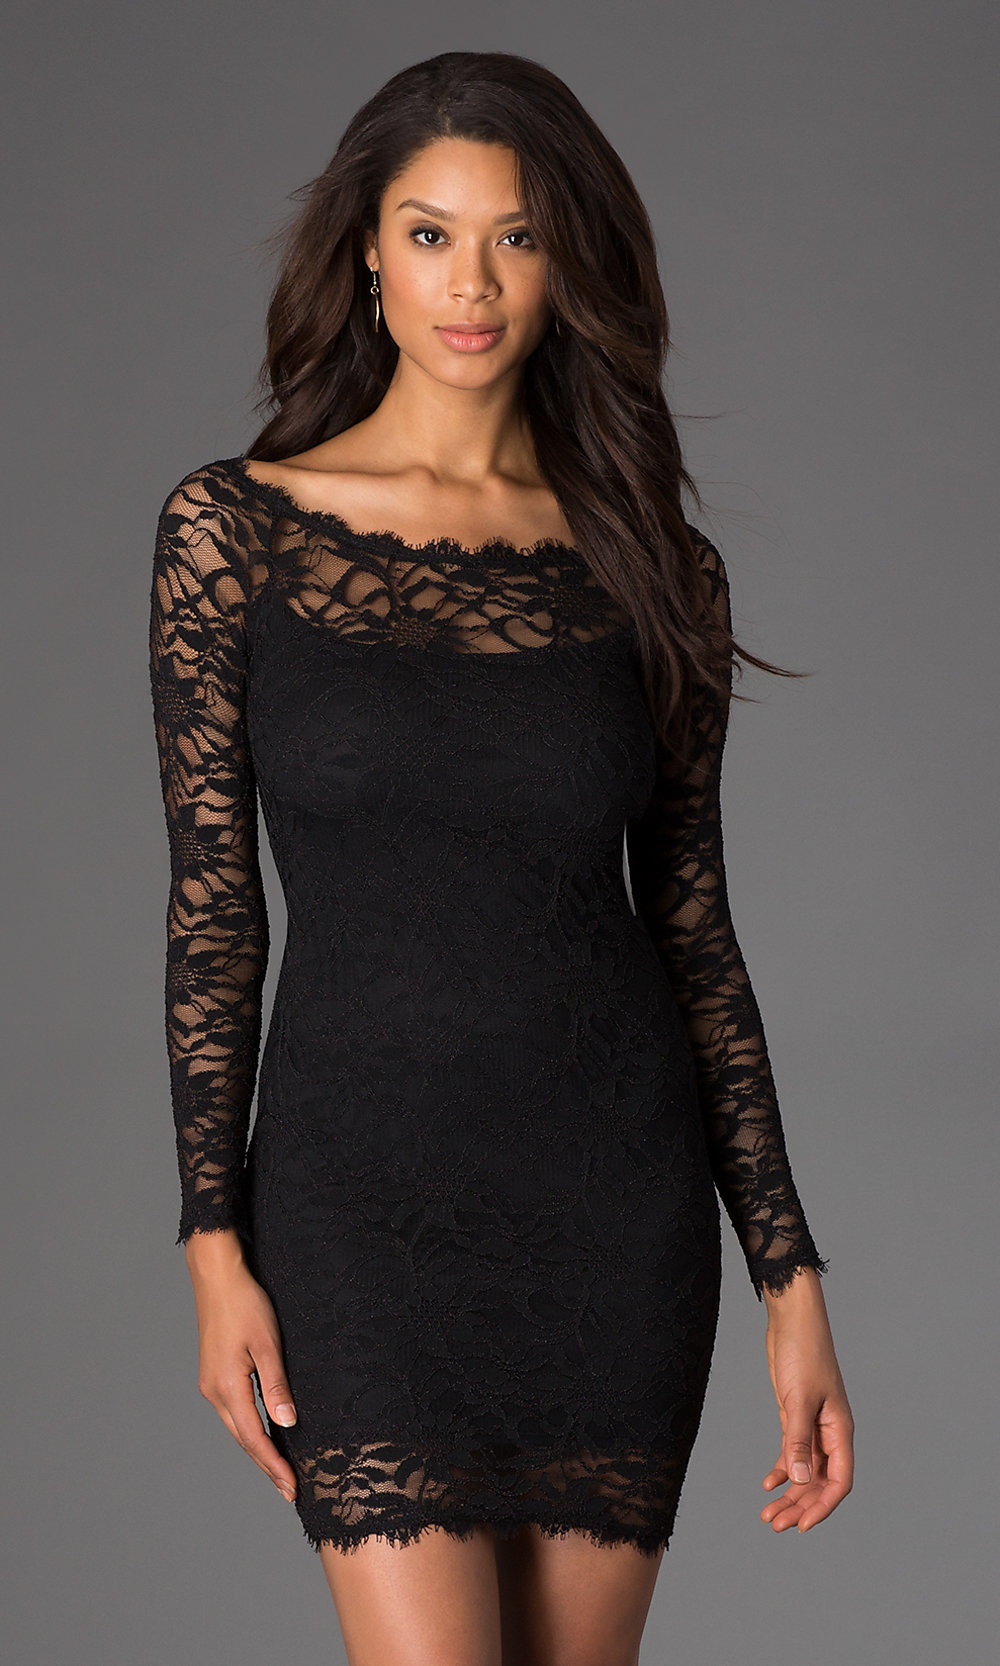 erawtoir.ga: Black Lace 3/4 Sleeve Dress. From The Community. 3/4 sleeves dress made with soft, delicate, embroidered lace that GAMISS Women's Vintage Off Shoulder Cocktail Dress Plus Size Floral Lace 3/4 Sleeves Wedding Dress S-5XL. by GAMISS. $ - $ $ 21 $ 26 99 Prime.